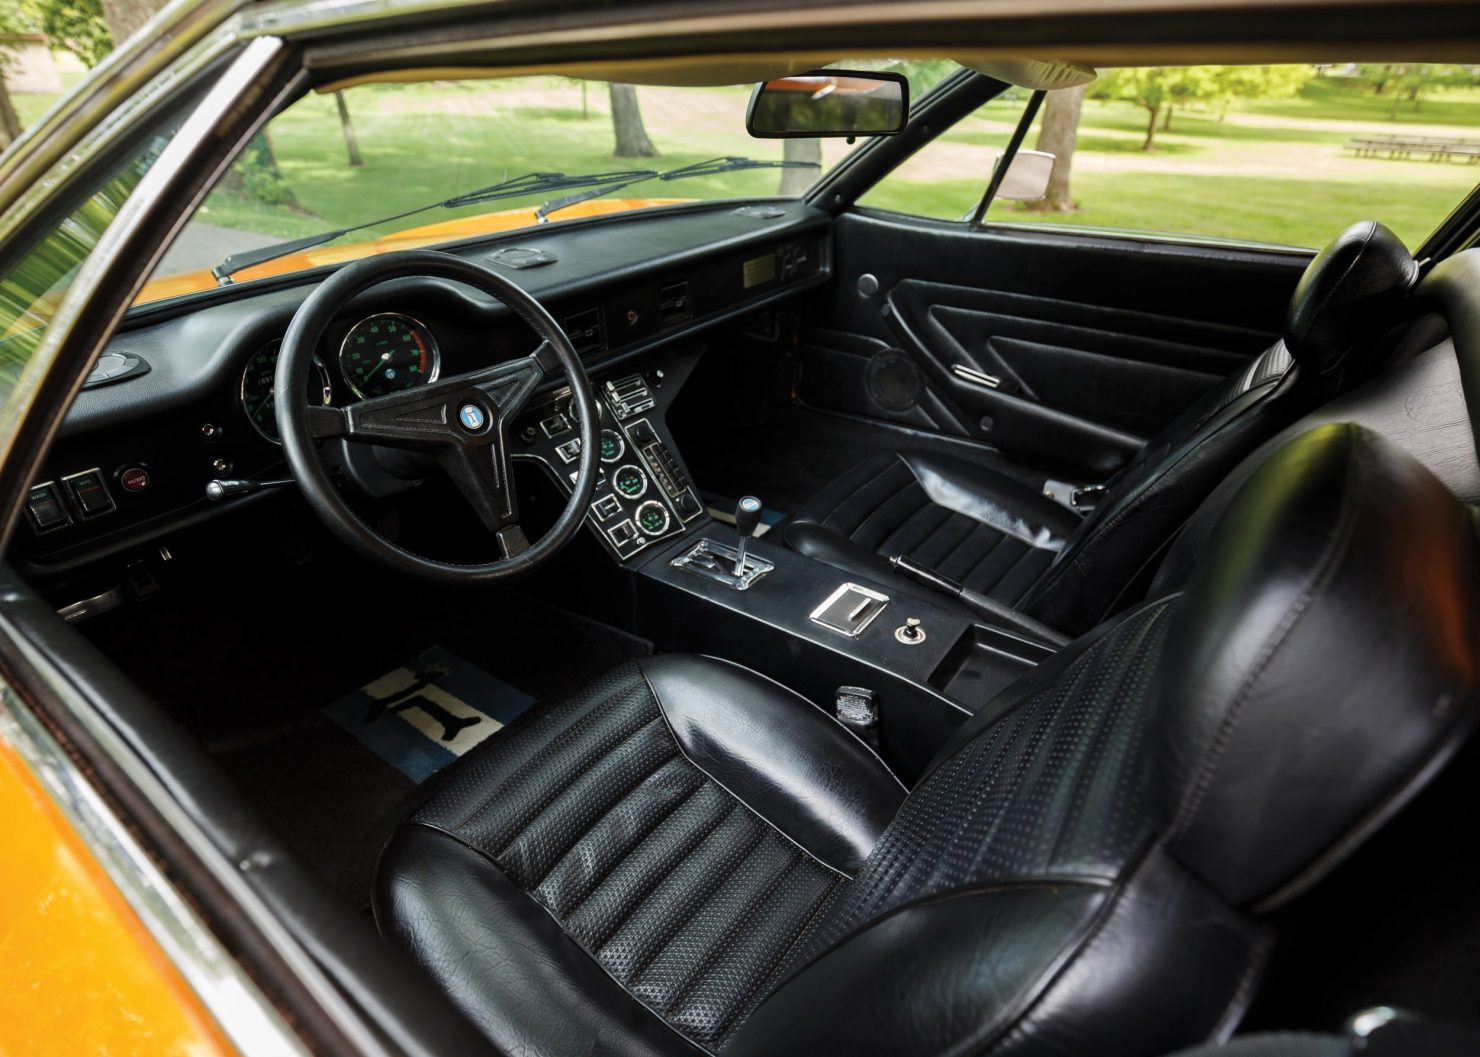 Interior: The Affordable Supercar